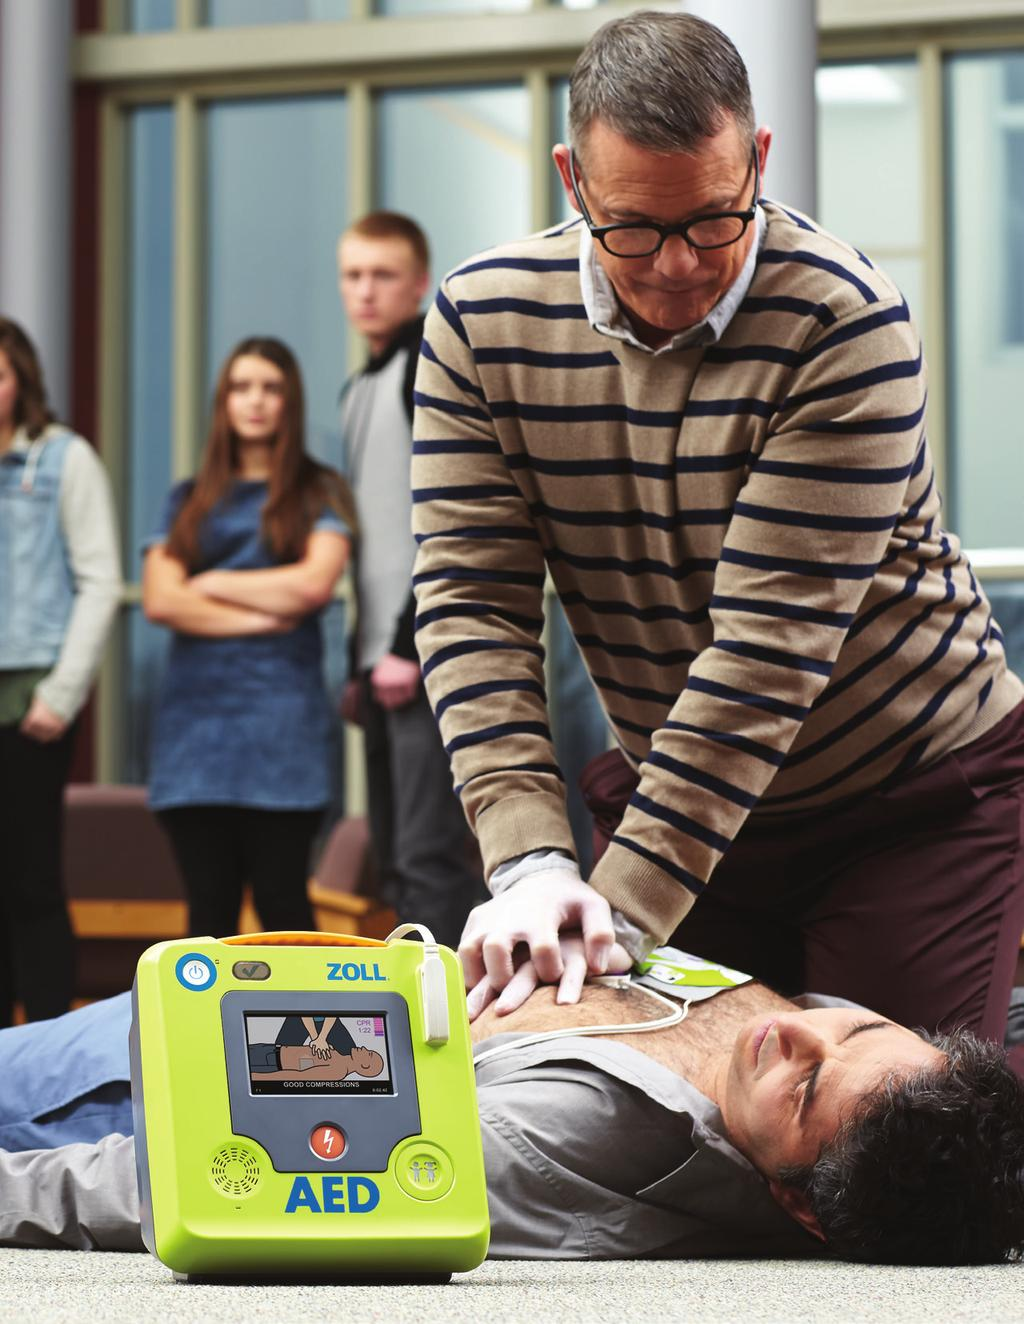 High-quality CPR improves survival from cardiac arrest.